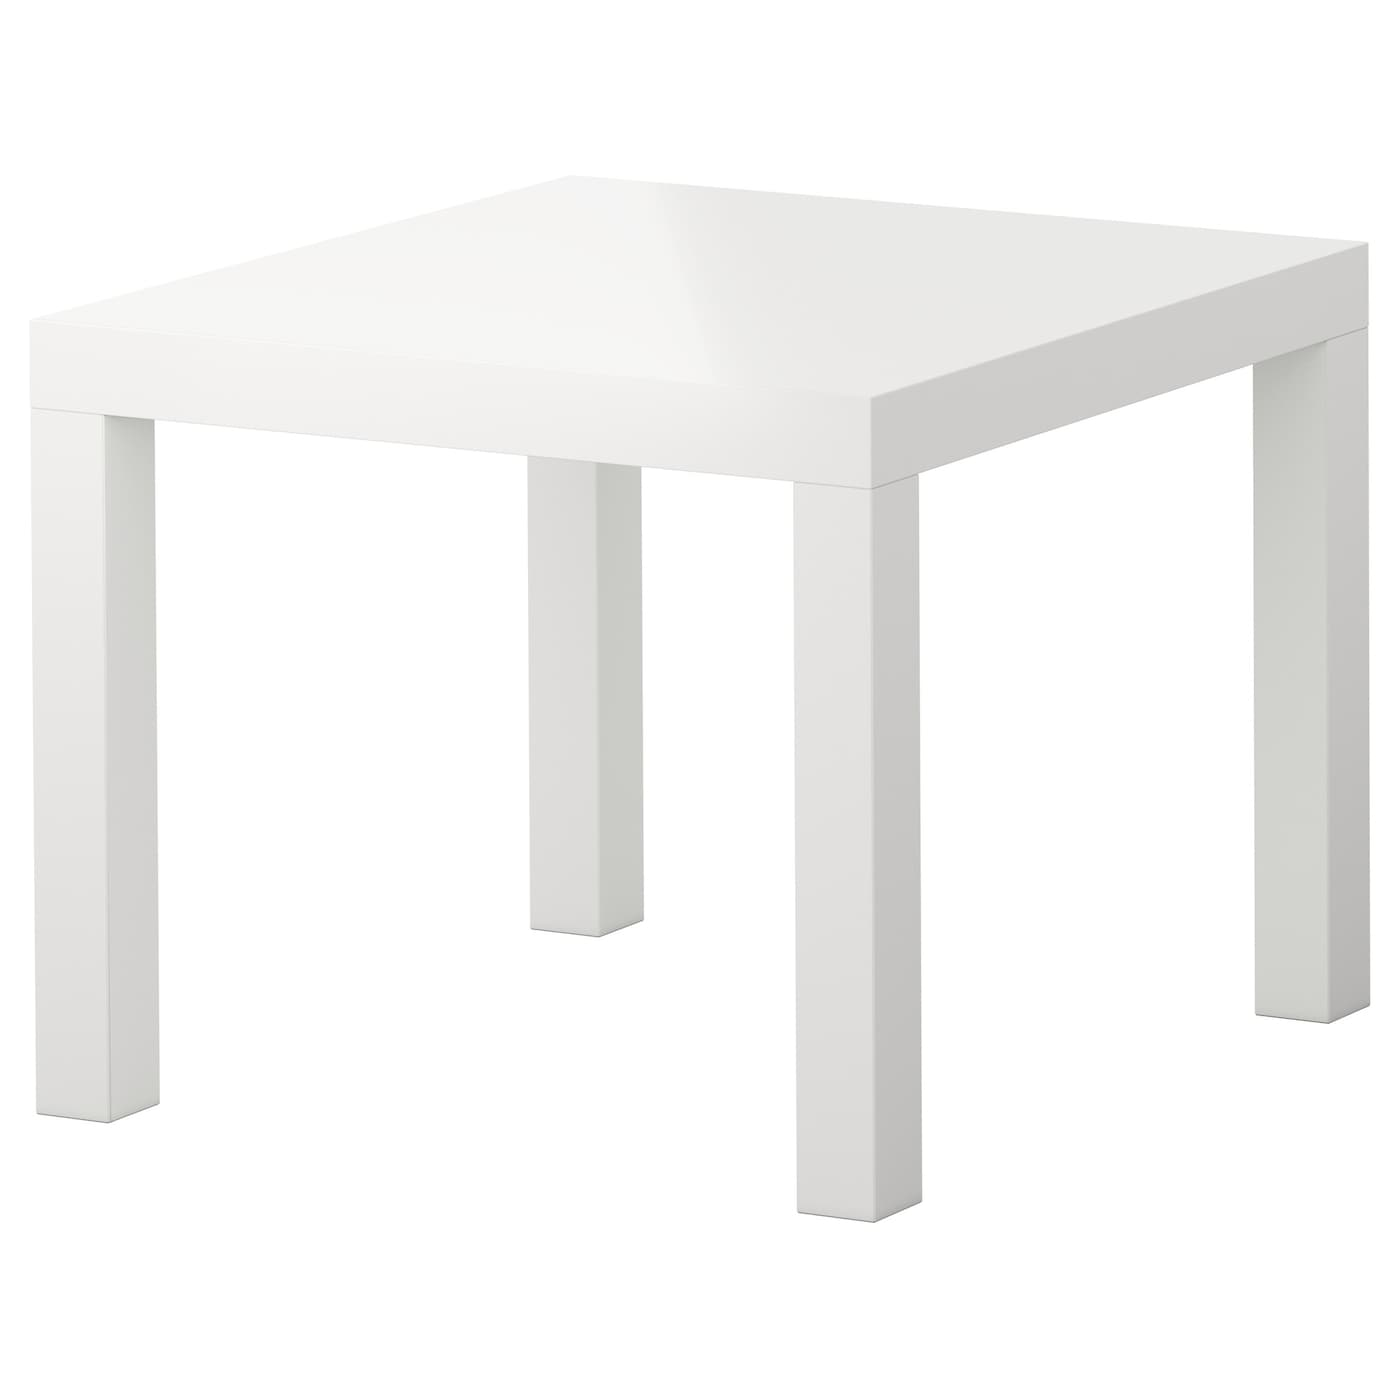 Lack side table high gloss white 55x55 cm ikea for Table ikea blanche